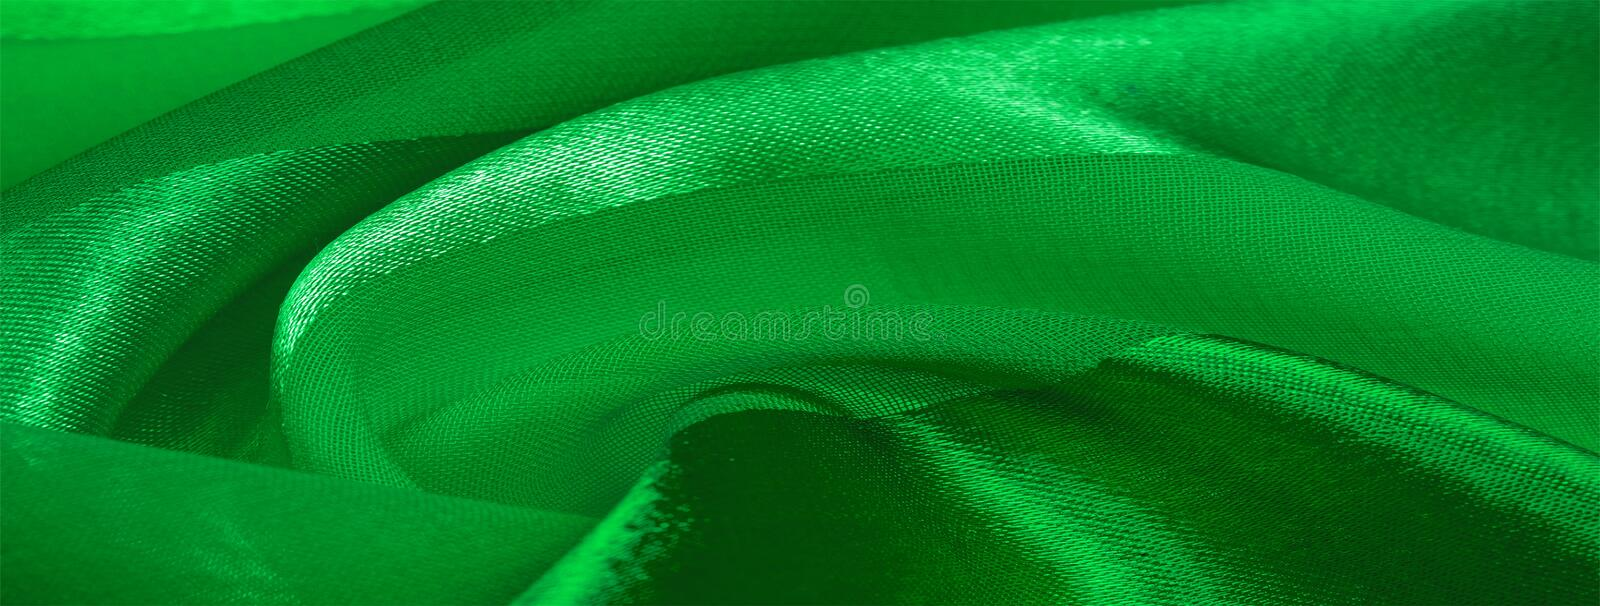 Texture, background, green silk striped fabric with a metallic sheen. If you have a bad mood, this fabric will lift it to. Unprecedented heights. Your project royalty free stock photo